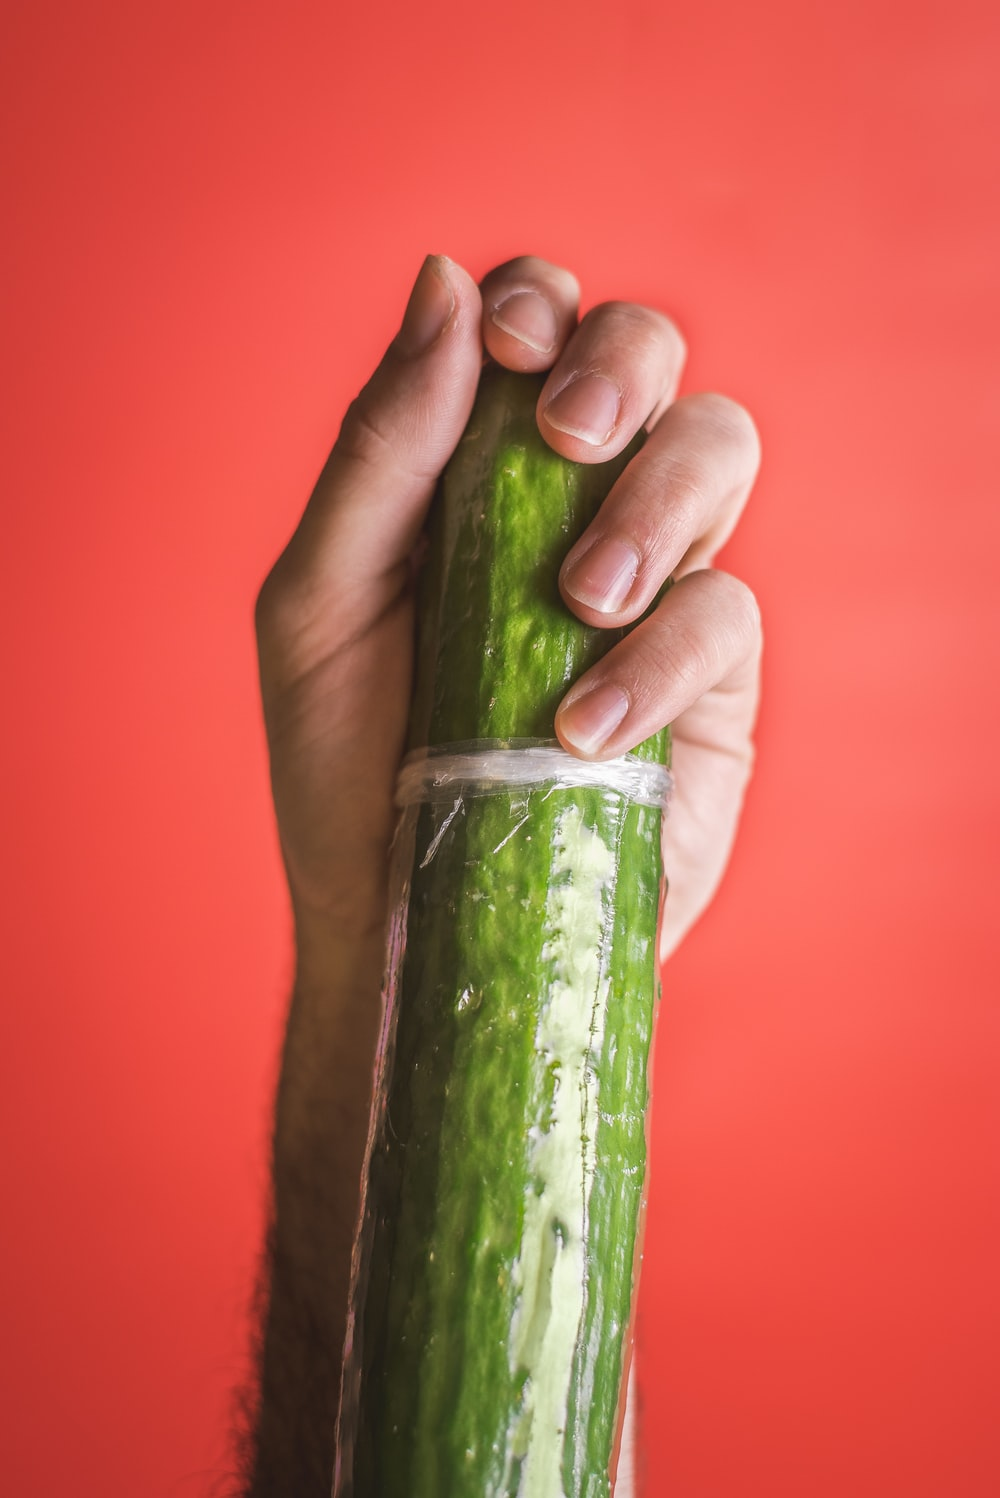 hand grasping a giant green cucumber